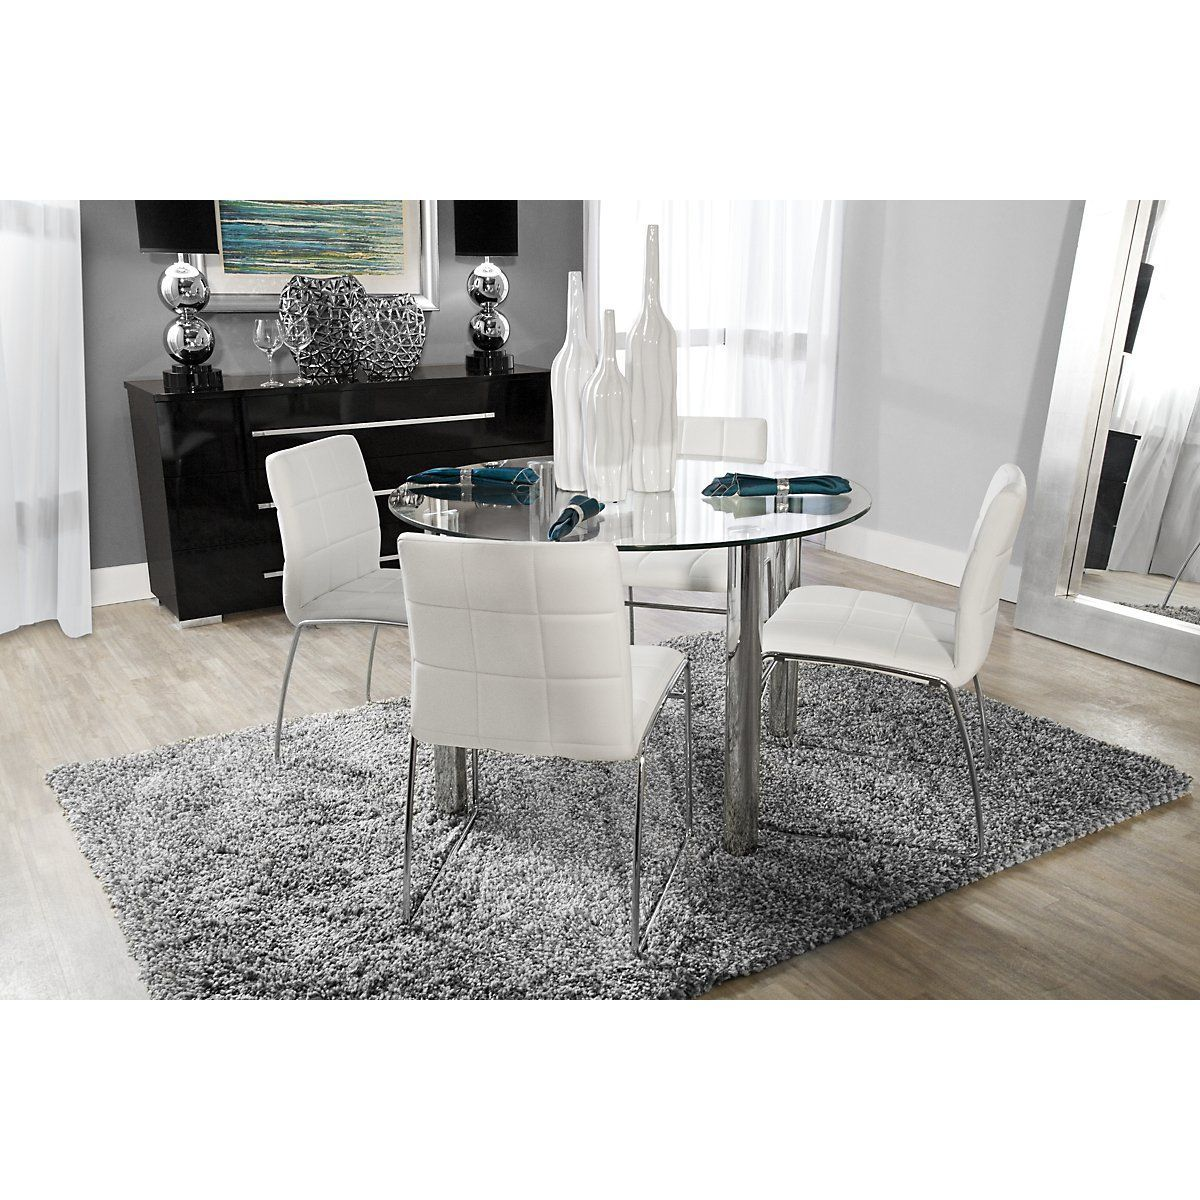 300.00 Set includes Round table and four side chairs Update your dining space with the contemporary Napoli dining table set. Enjoy the aesthetic beauty of ...  sc 1 st  Pinterest & 300.00 Set includes: Round table and four side chairs Update your ...